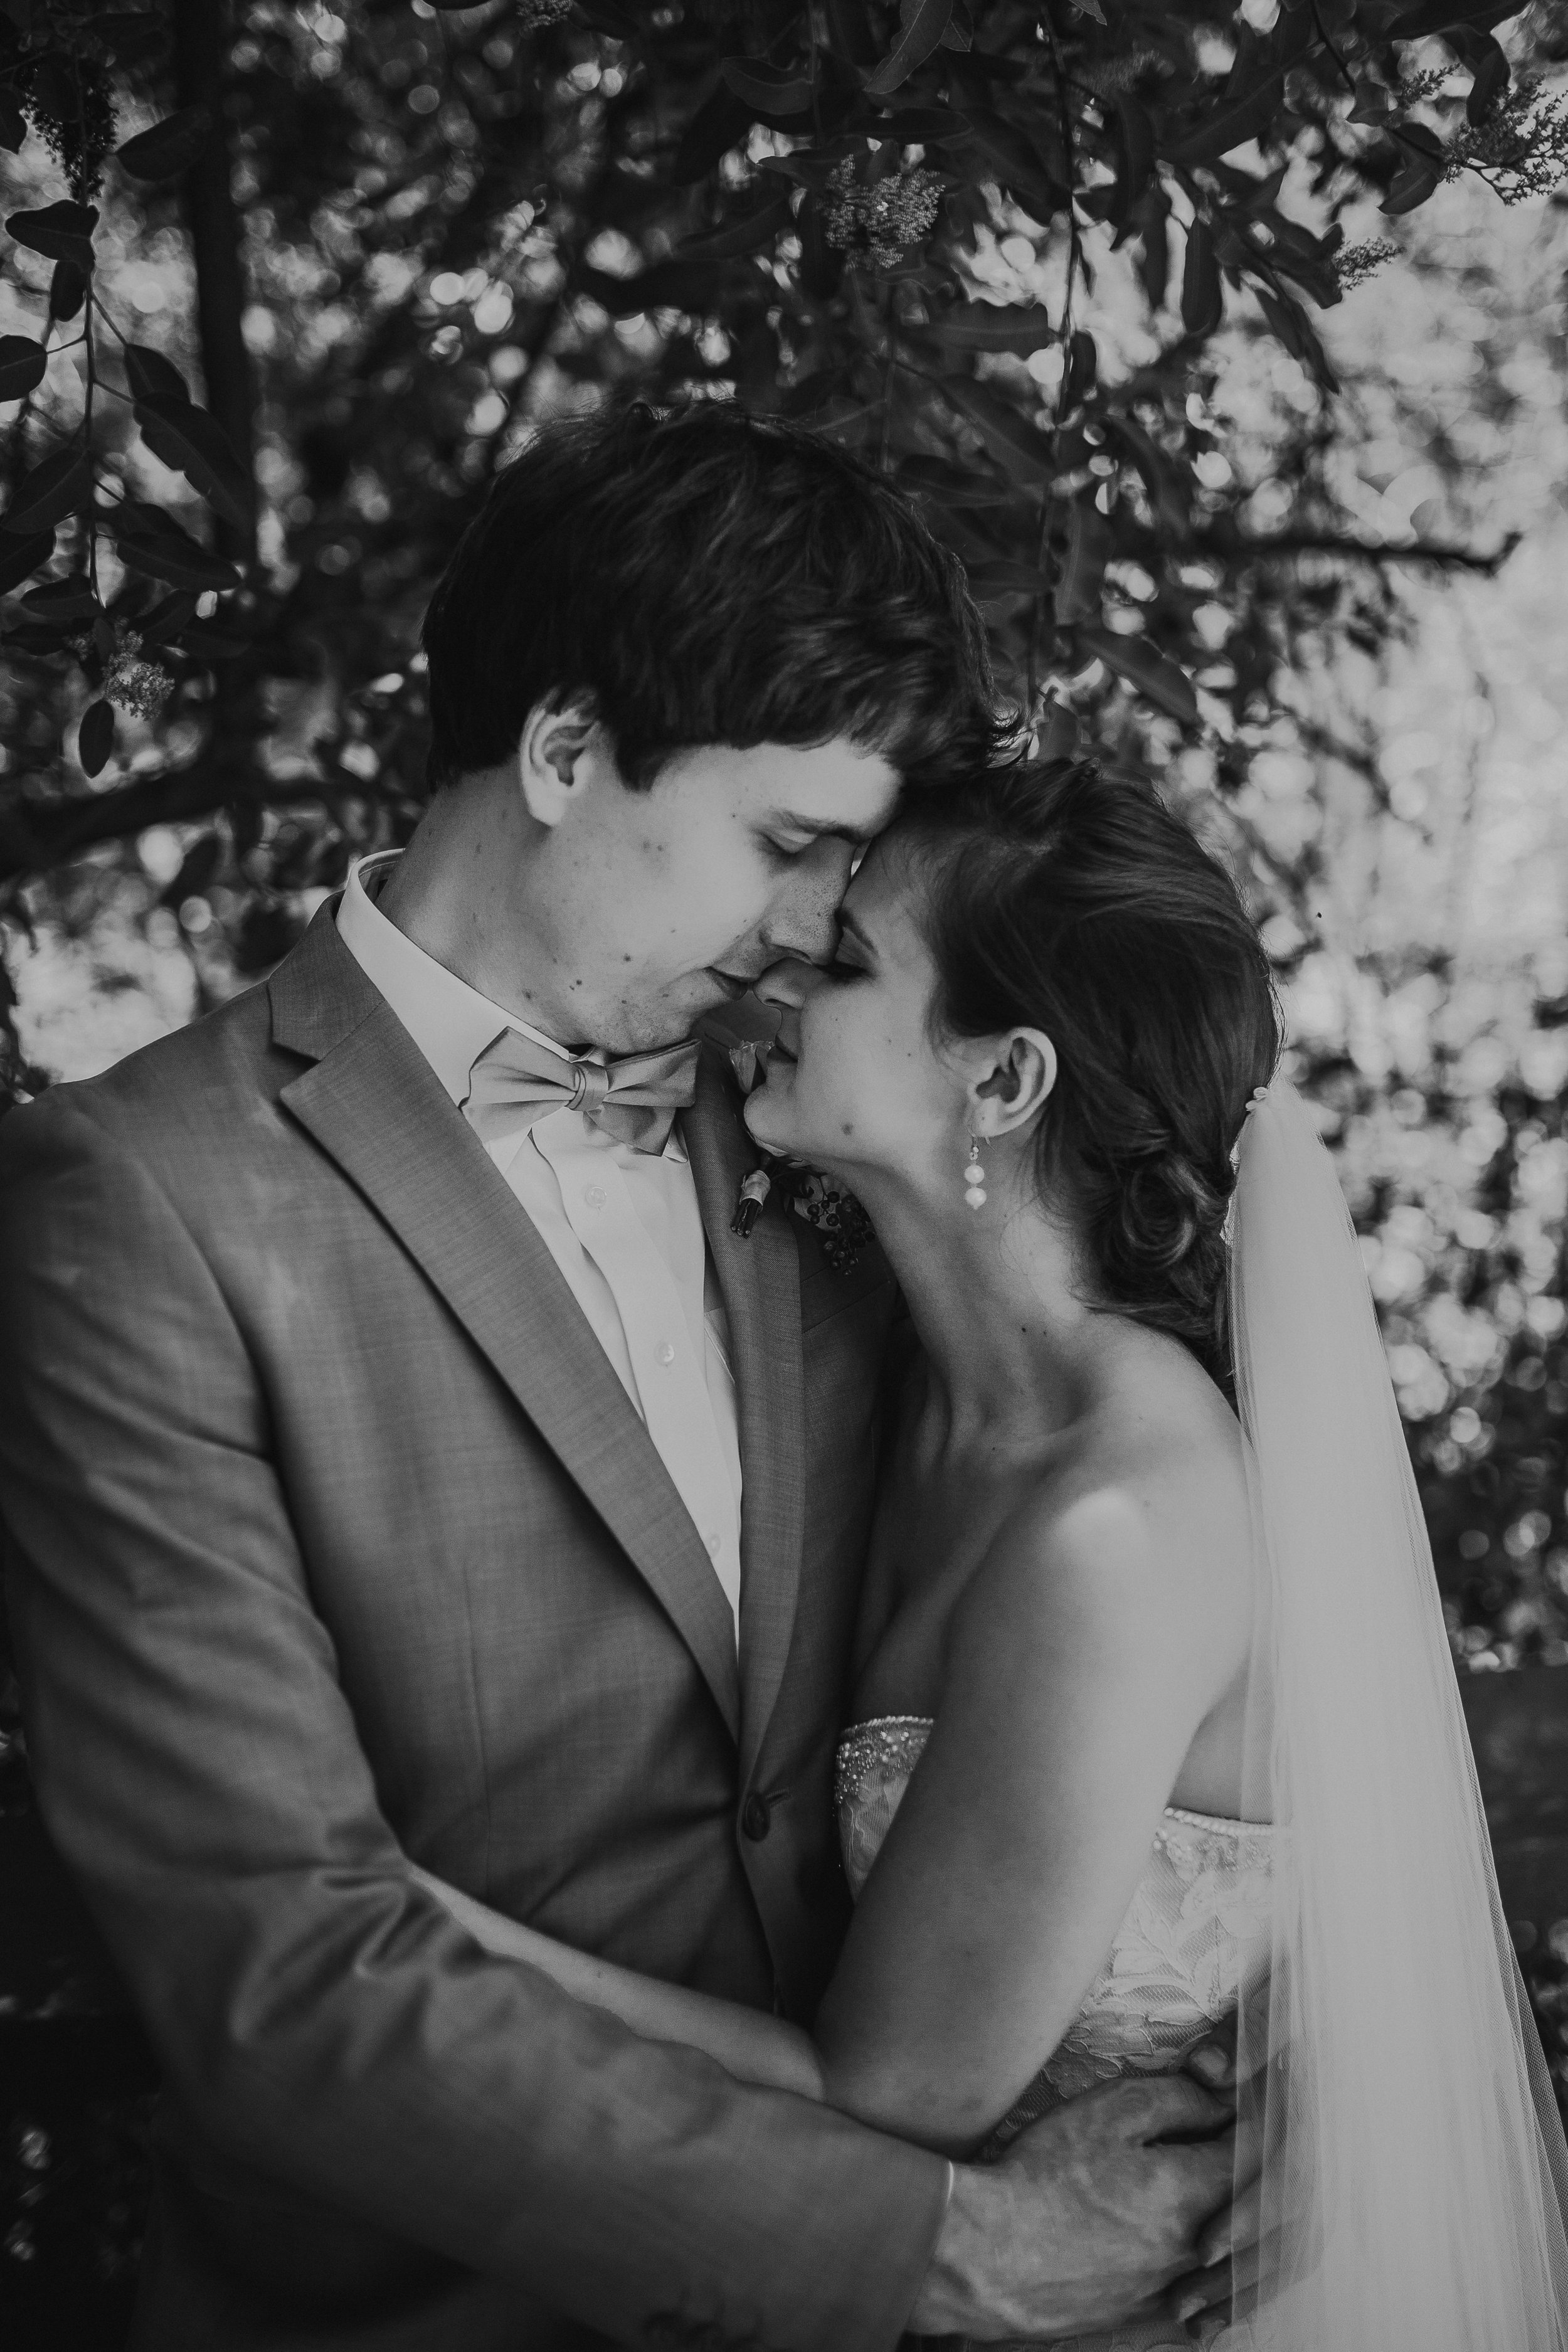 Kiara and David did a great job shooting our wedding last June. The photos that they captured for us included your expected stills and portraits, but also intimate moments, spontaneous laughter, and beautiful shots. Their care for their clients is palpable, and we're so thankful they were able to capture our big day!   Dotti & Elvins, June 2017